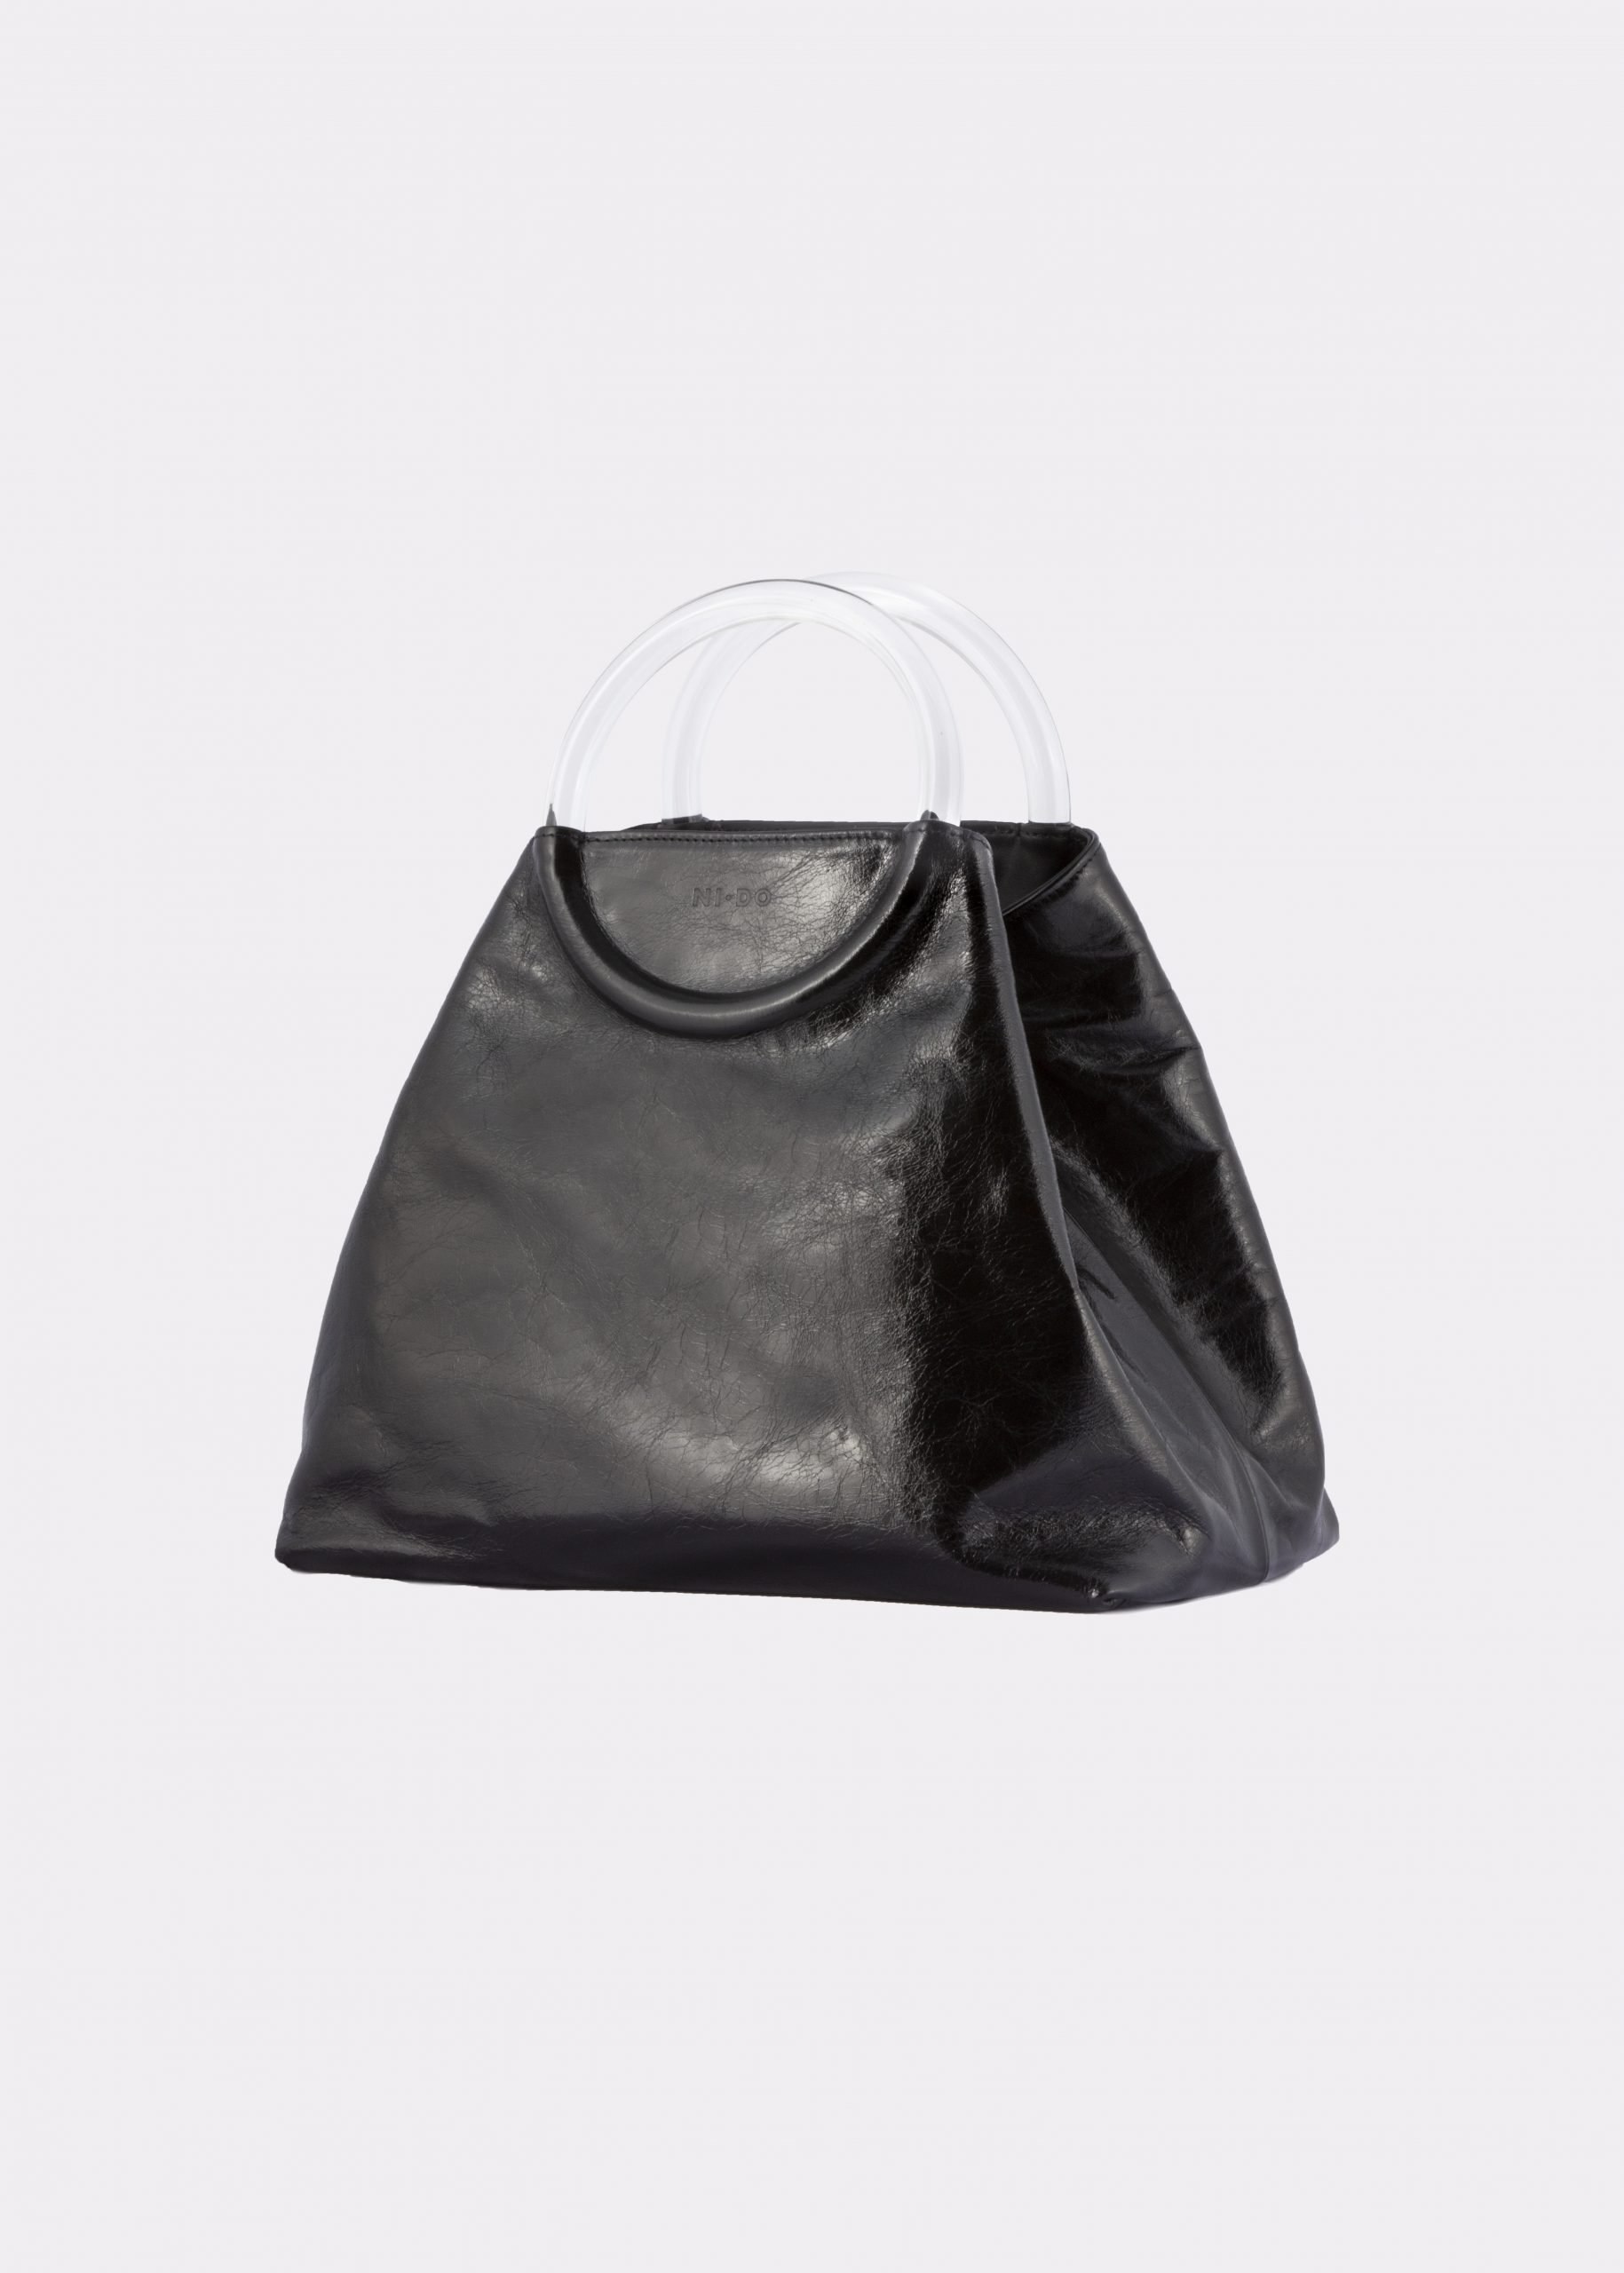 NIDO Bolla Maxi bag Glossy Black Plexy side view